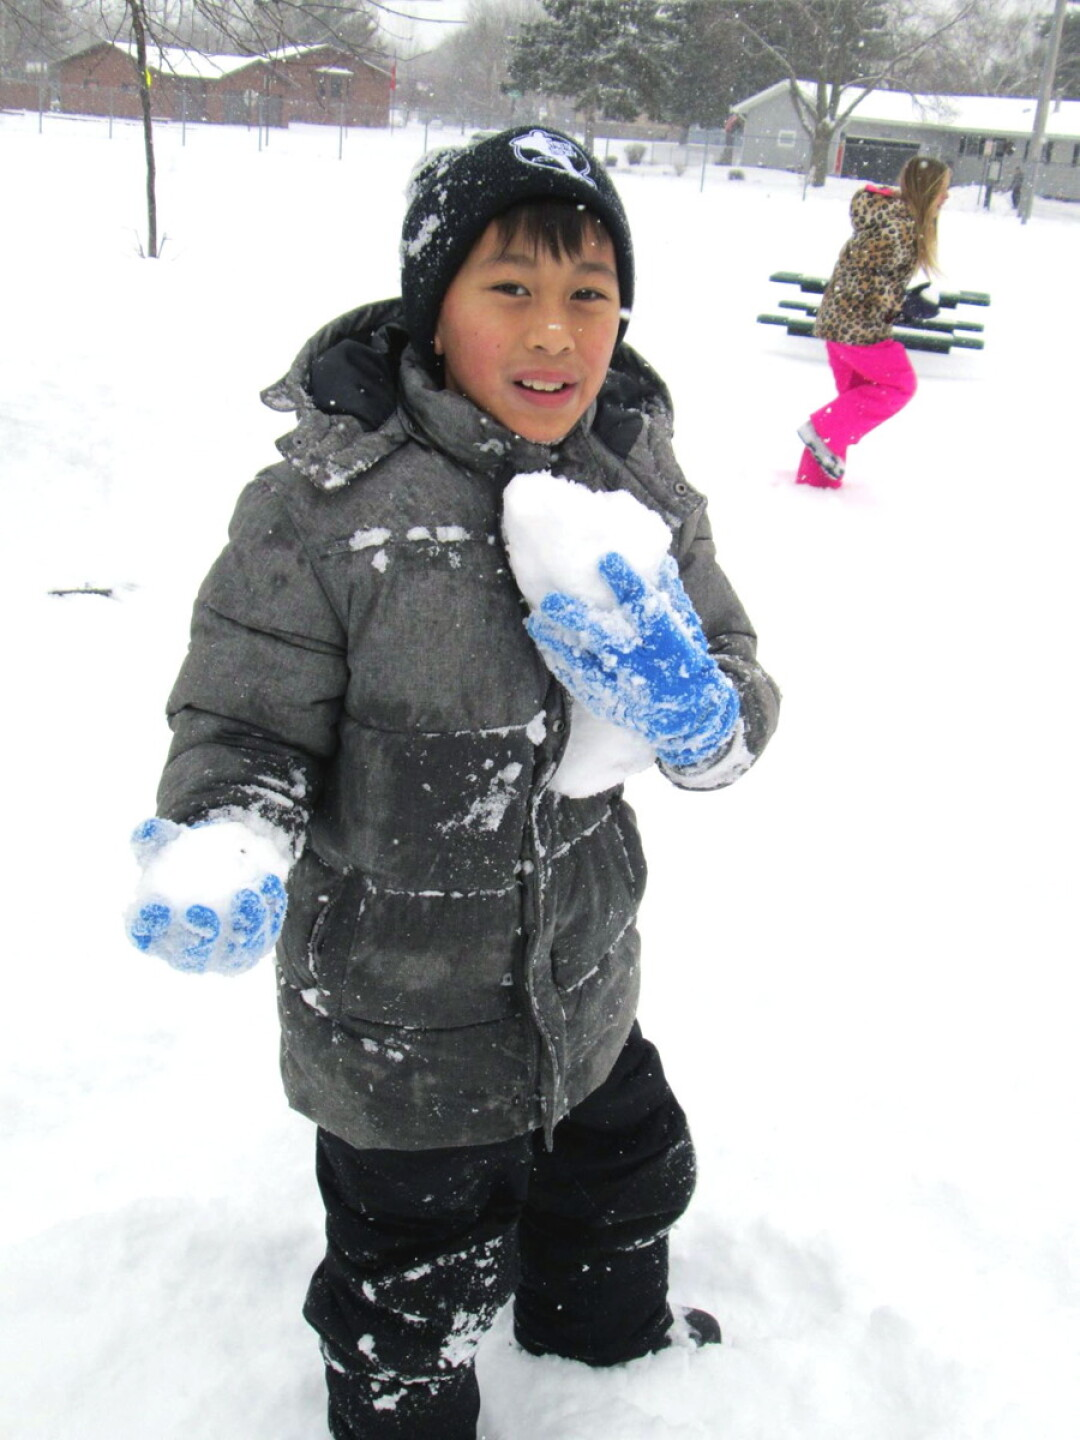 winter fun is returning for boys and girls in menomonie.